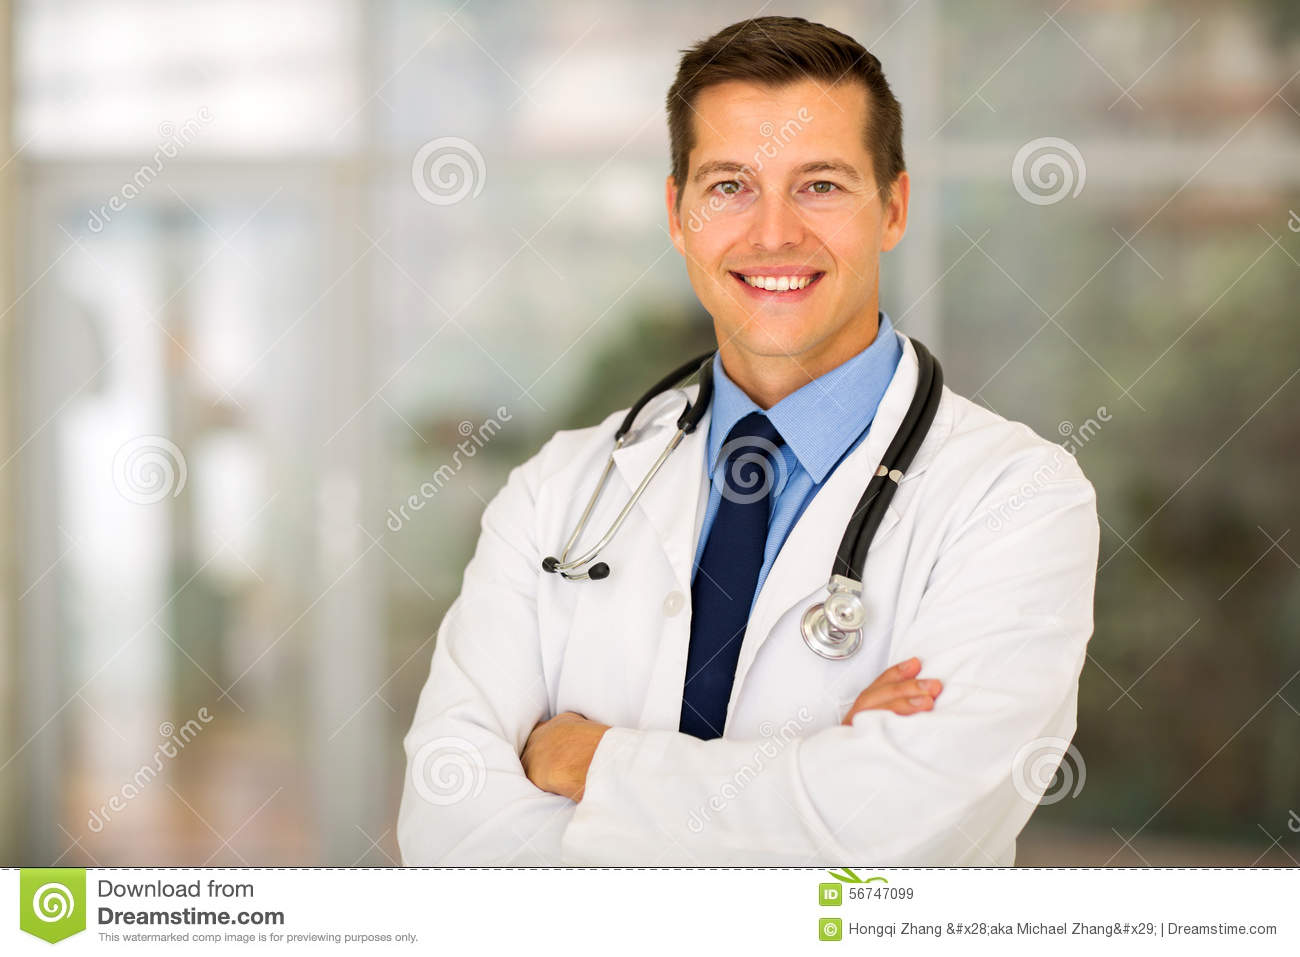 Health Care Worker Stock Photo